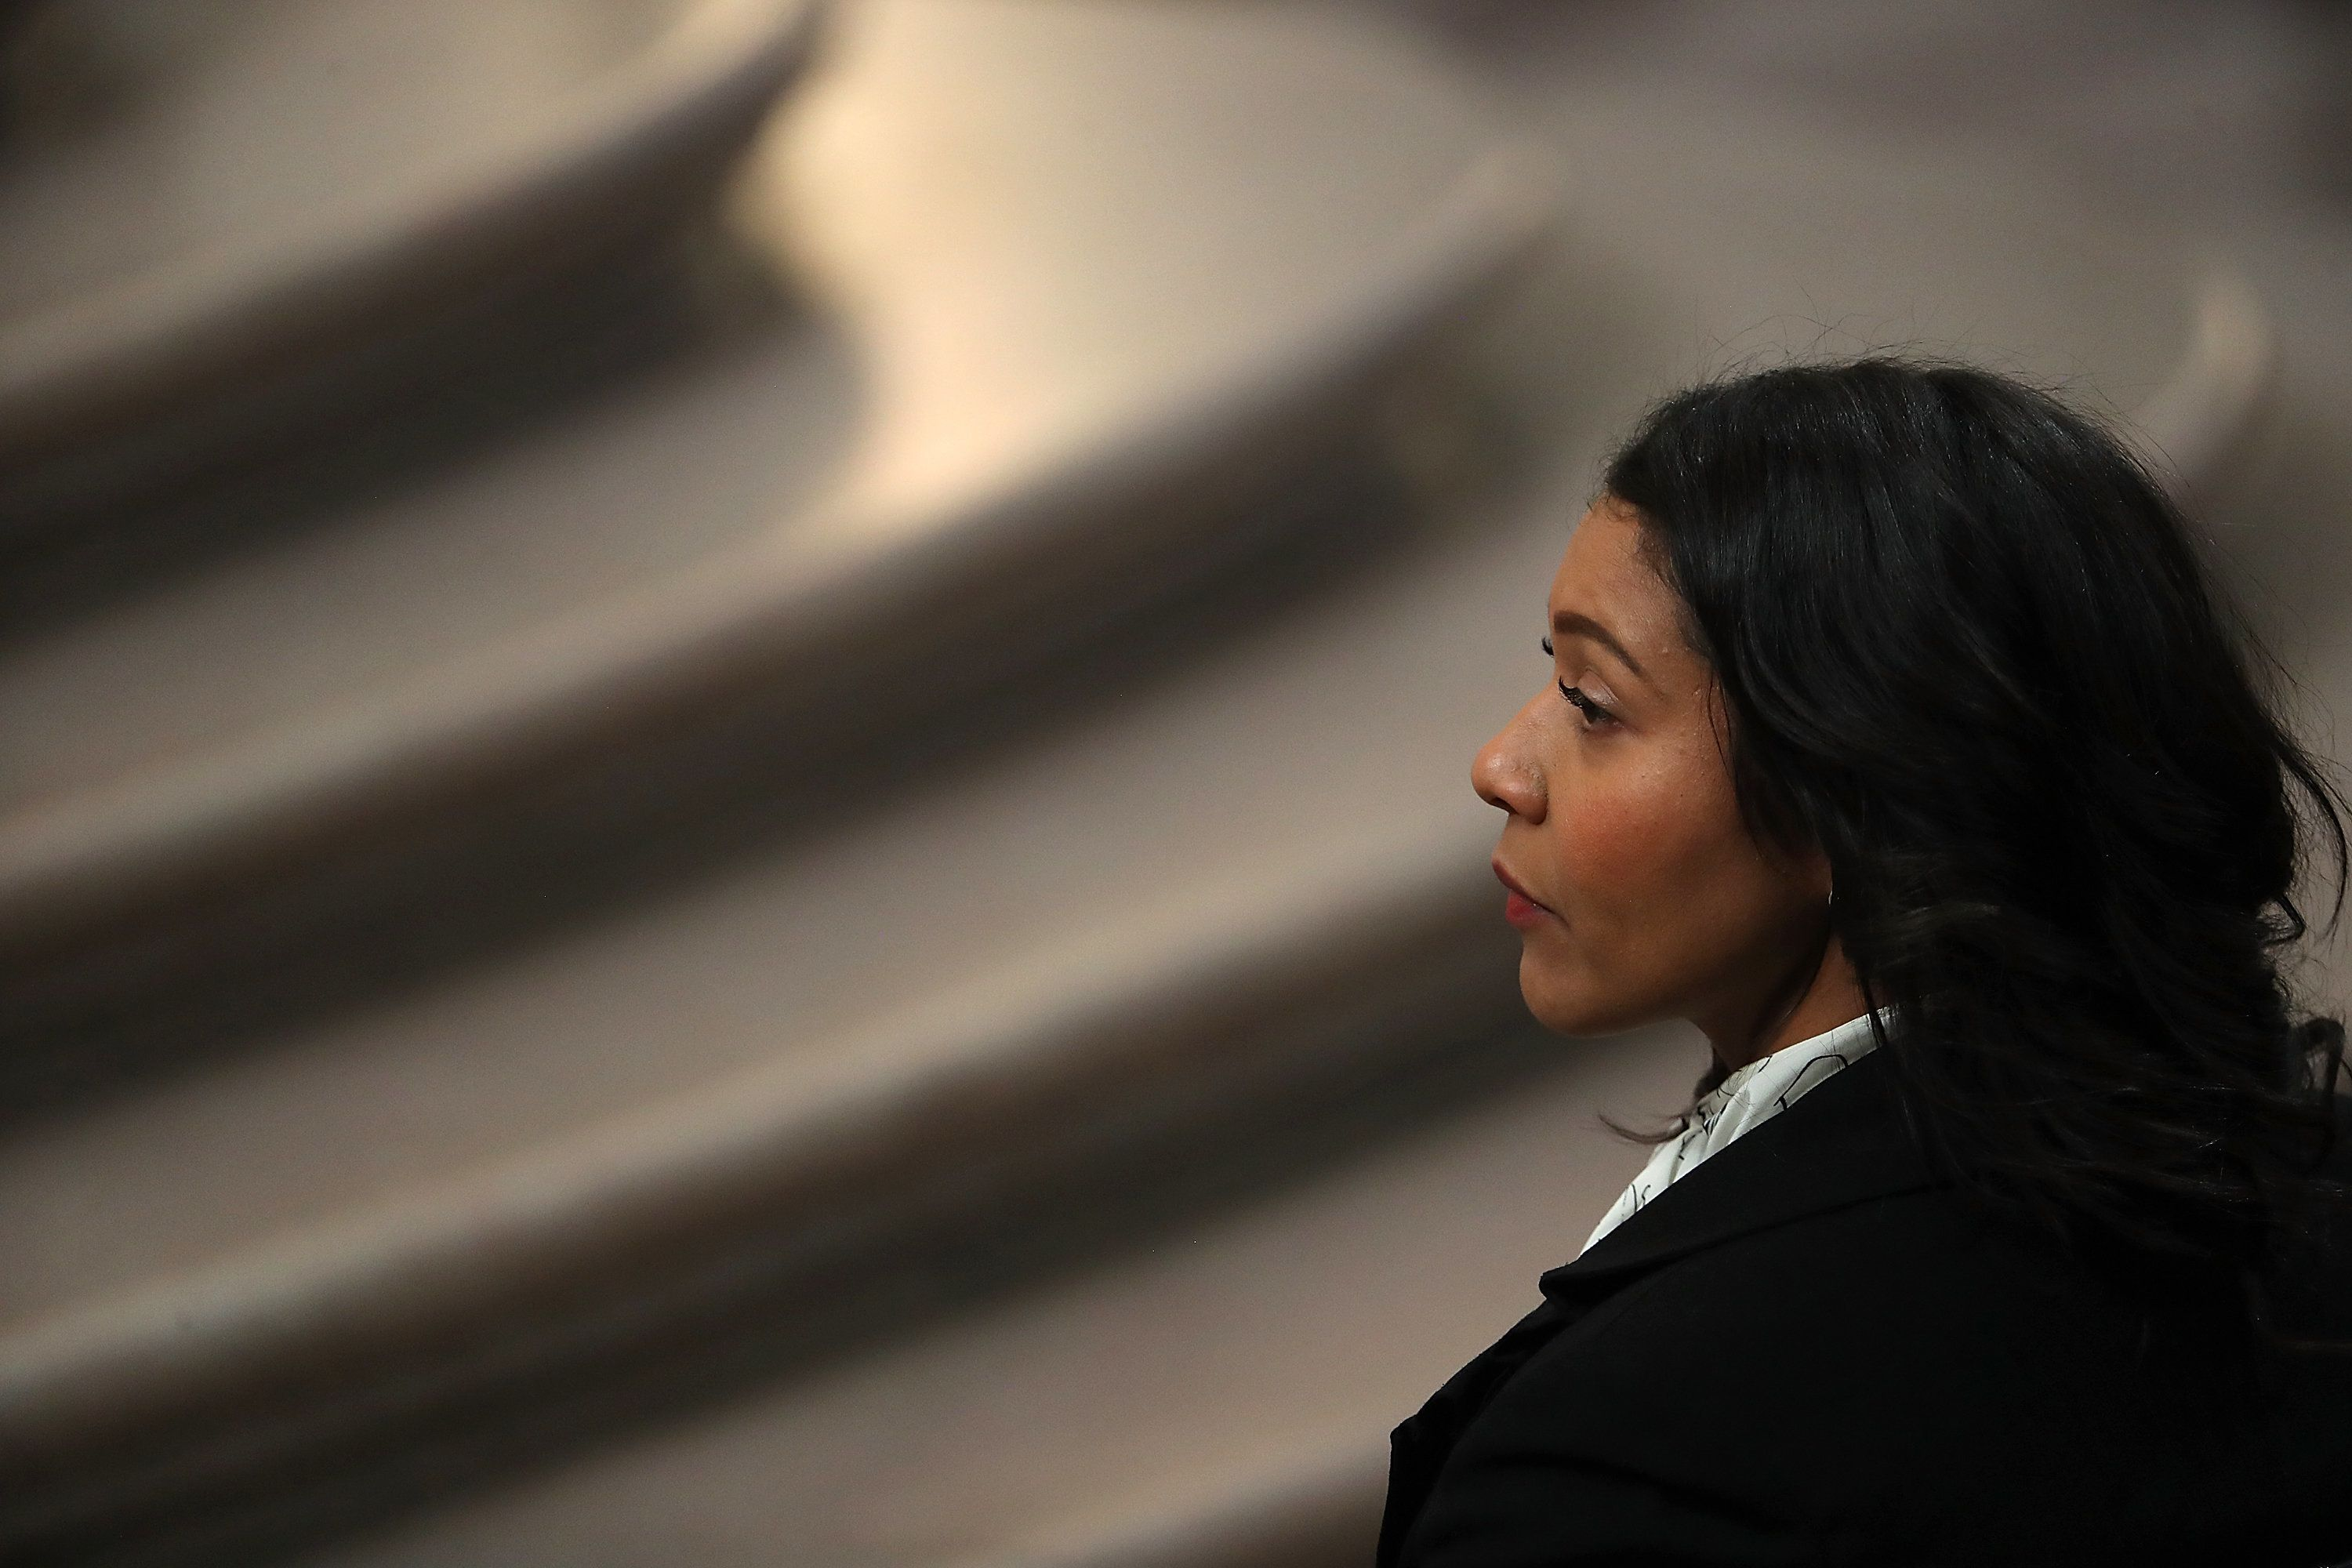 SAN FRANCISCO, CA - DECEMBER 17:  Acting San Francisco mayor London Breed looks on during a Celebration of Life Service held for the late San Francisco Mayor Ed Lee on December 17, 2017 in San Francisco, California. Hundreds of people attended the service for Lee, who died unexpectedly early Tuesday morning after suffering a heart attack.  (Photo by Justin Sullivan/Getty Images)